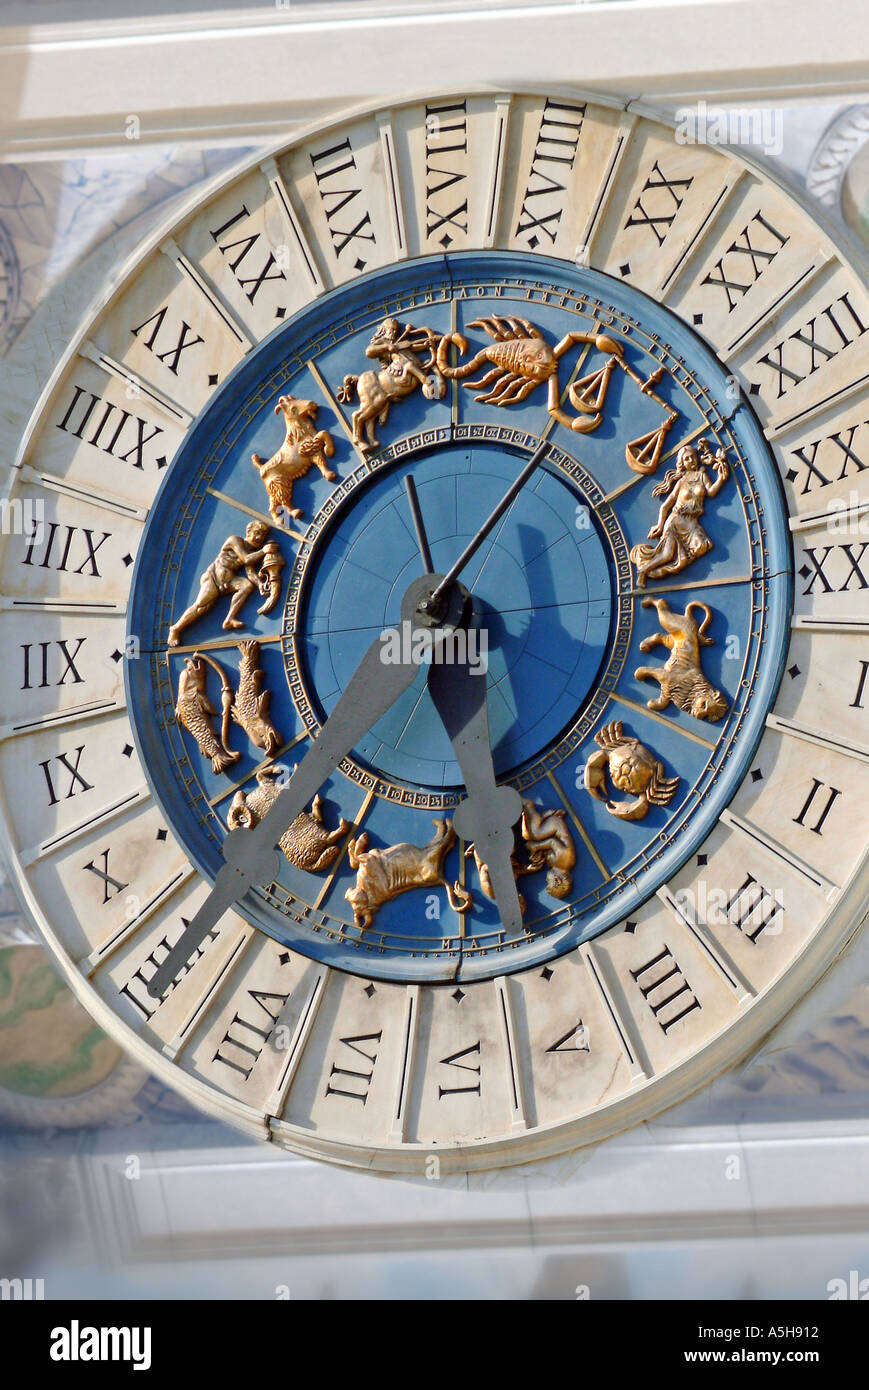 Ornate clock with roman numerals - Stock Image